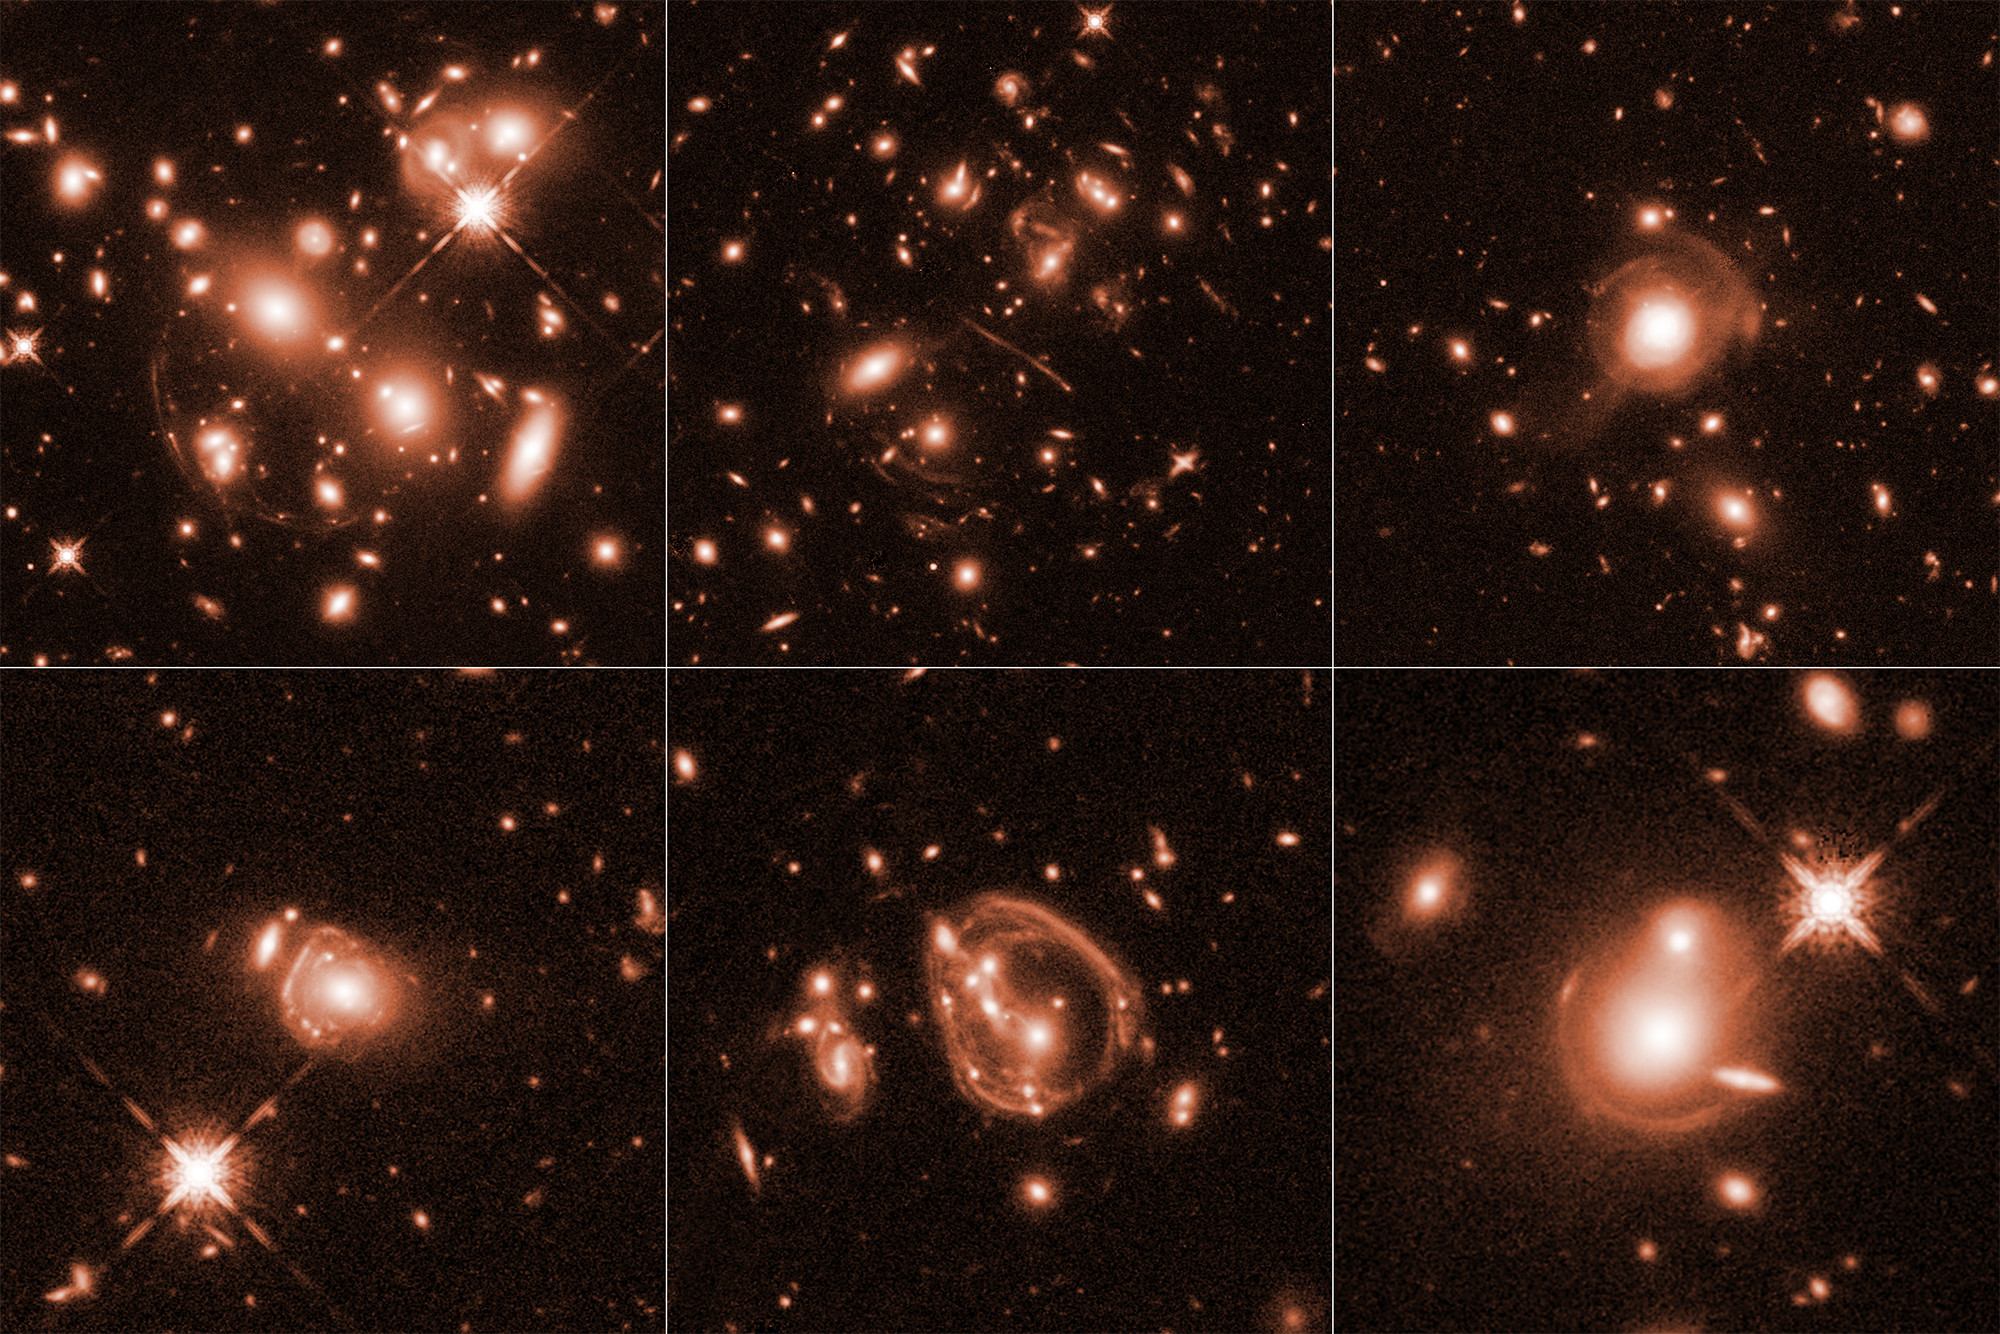 NASA's Hubble Space Telescope captures Universe's brightest galaxies